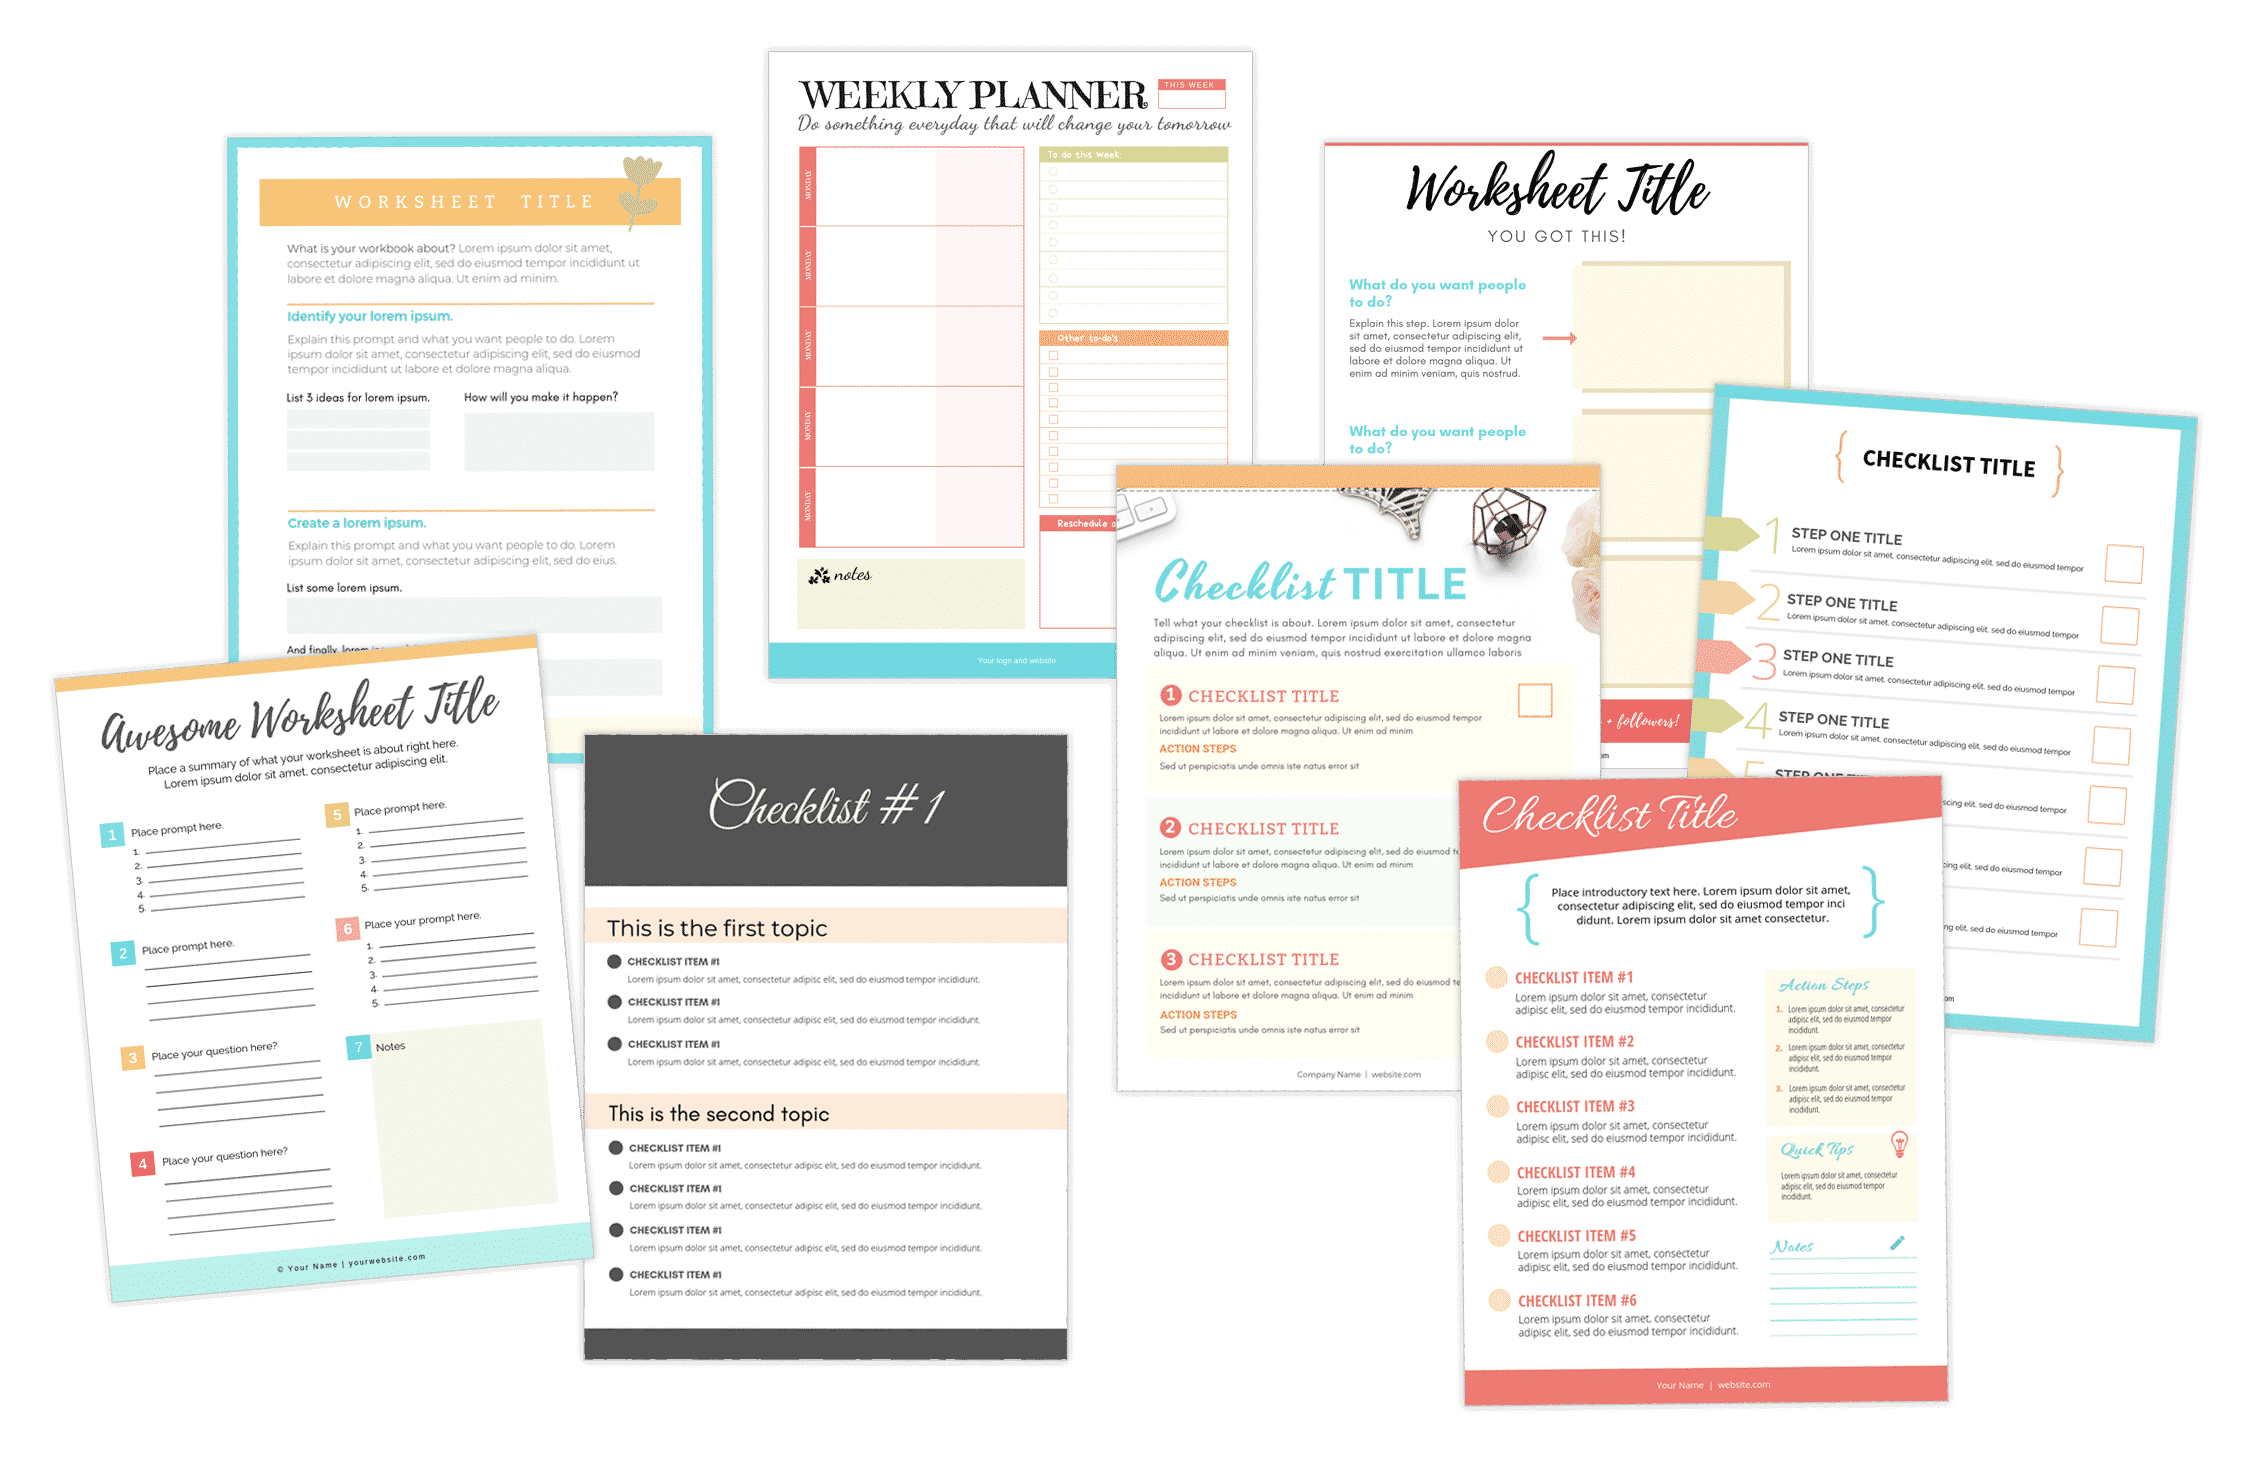 Free workbook and checklist templates to build your email list!